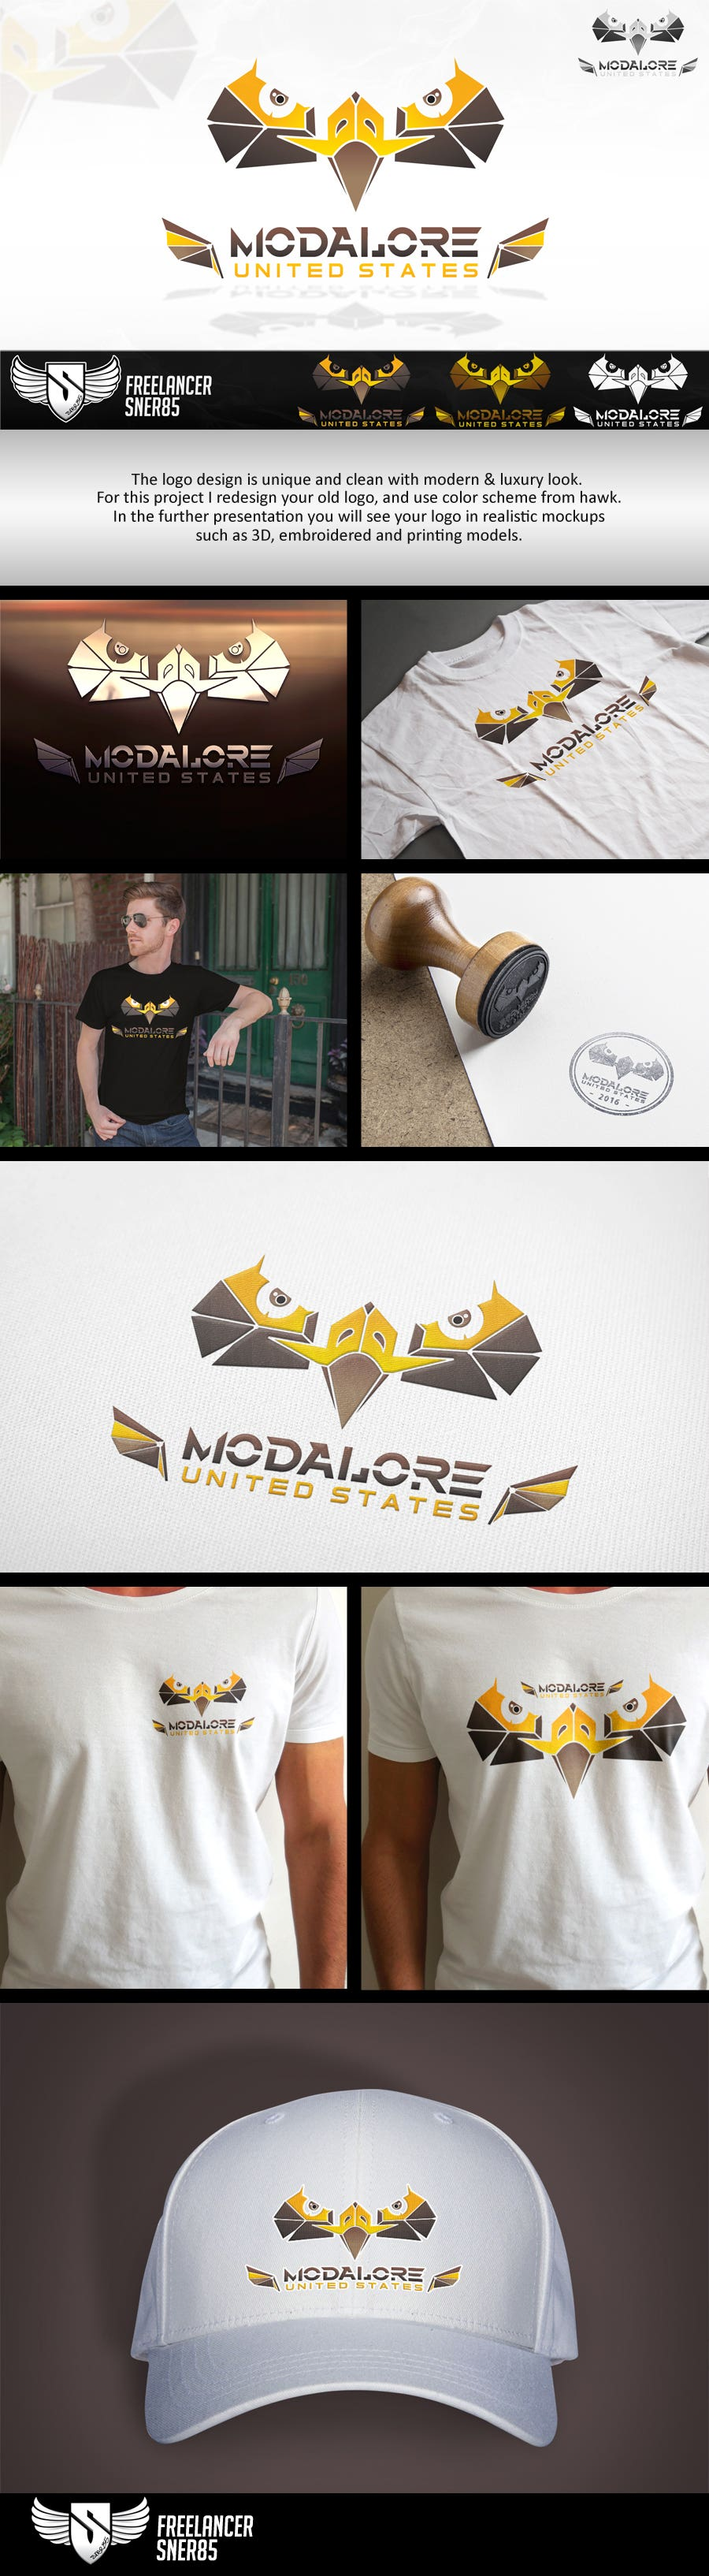 Logo design for MODALORE United States